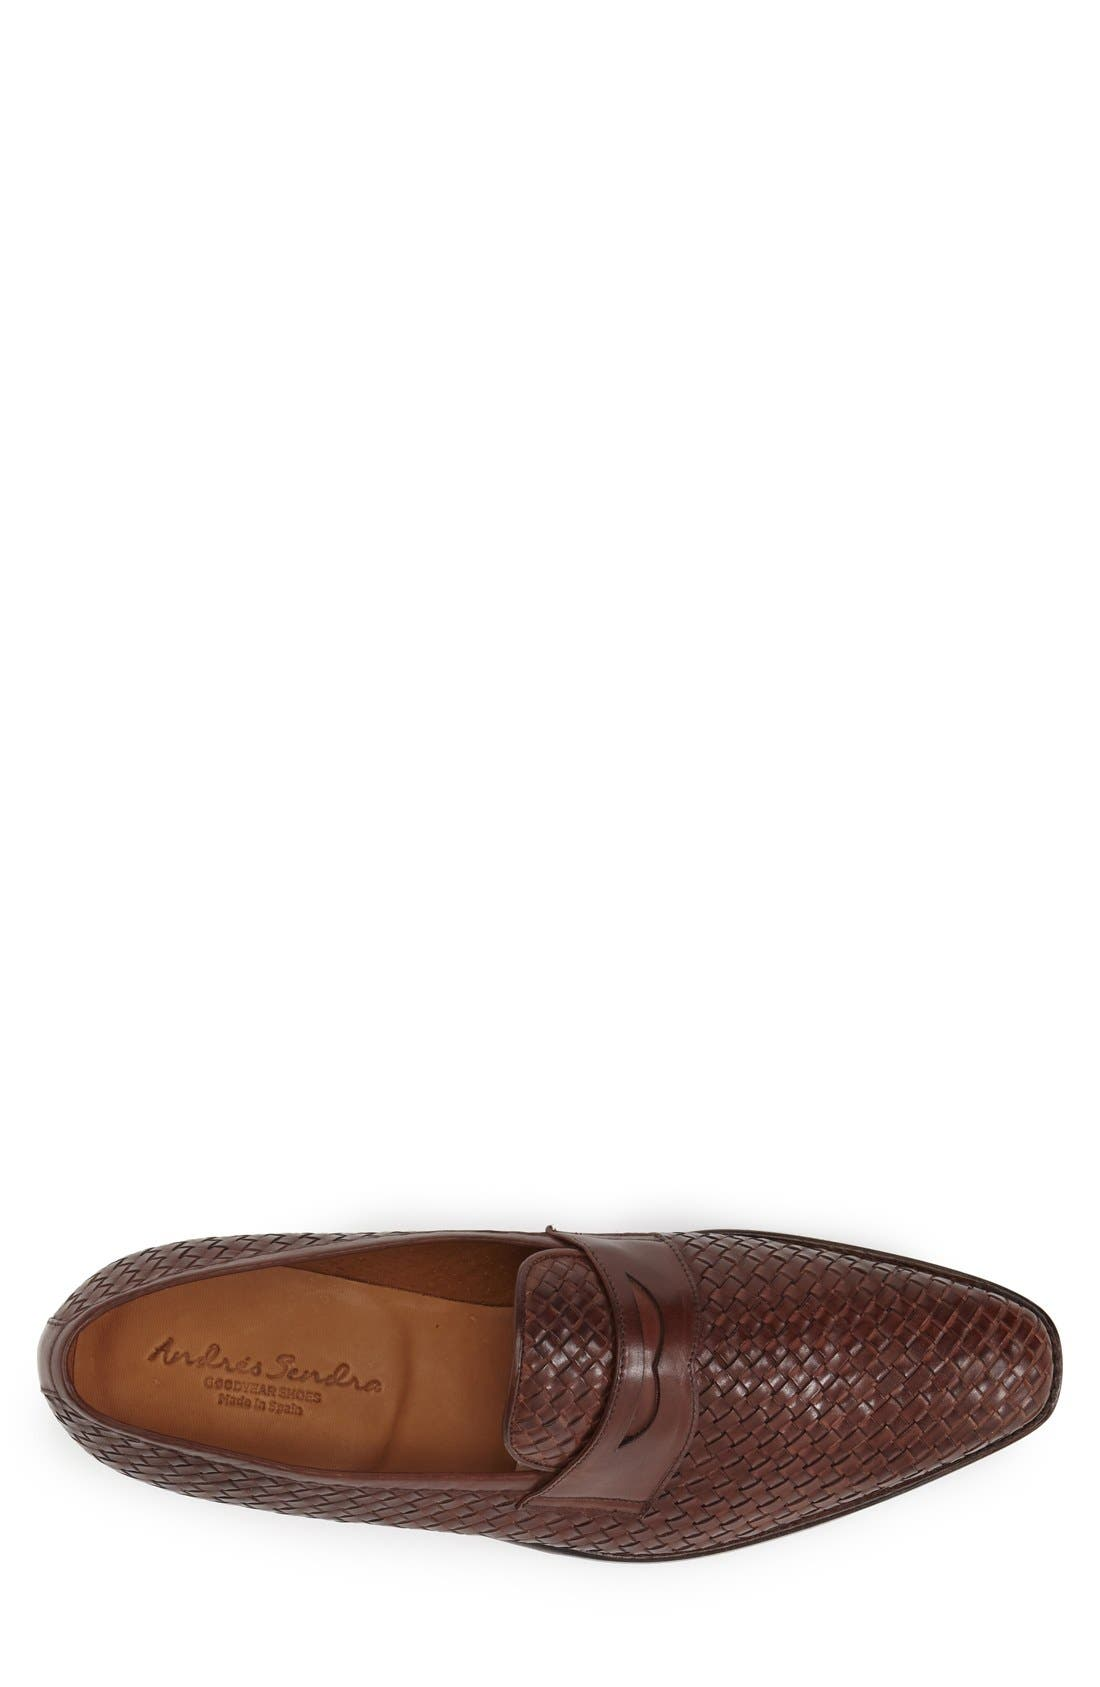 Boots 'Saratoga' Penny Loafer,                             Alternate thumbnail 3, color,                             Brown